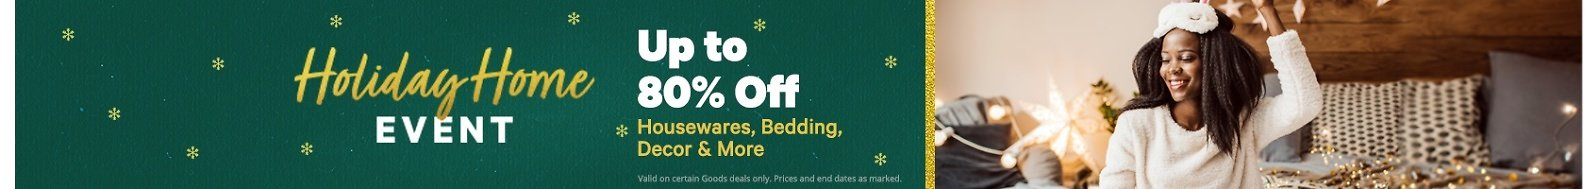 Up To 80% Off Holiday Home Event | Groupon